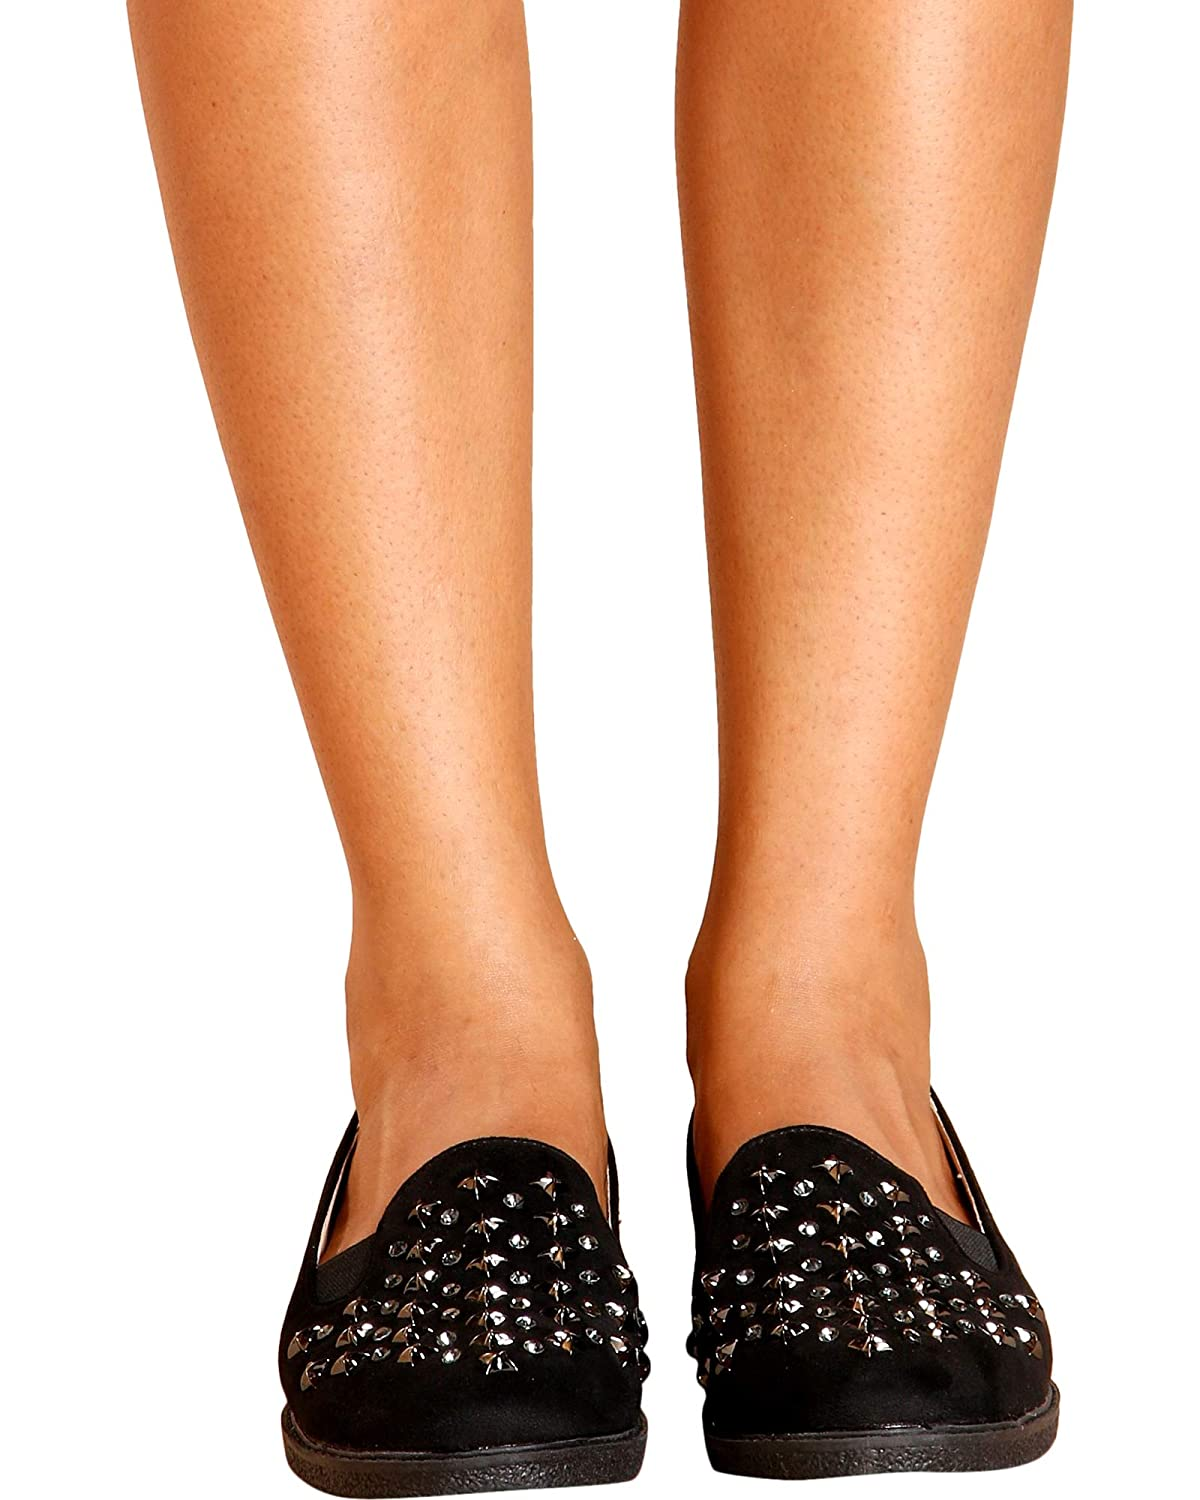 Black,Black,11 PAZZLE Womens Classy Studded Loafer